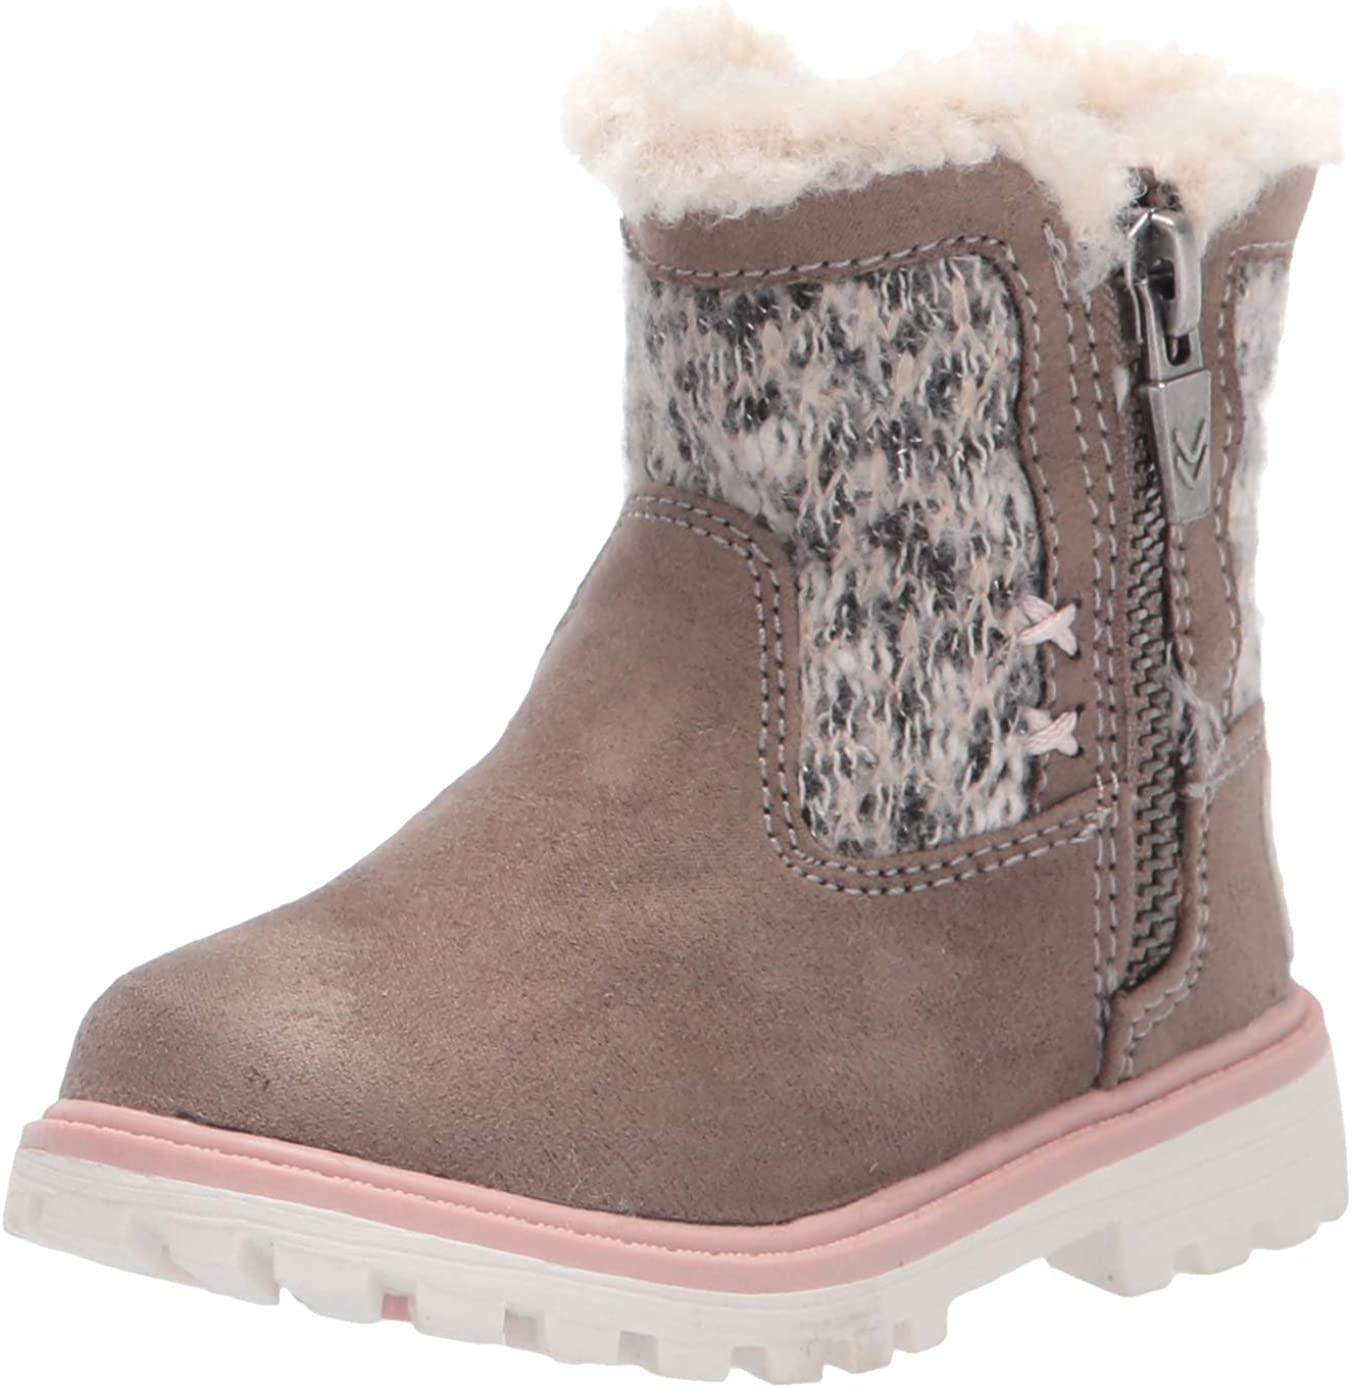 Dr. Scholl's Kids Unisex-Child Fashion Max 78% OFF Boot Kendal 25% OFF